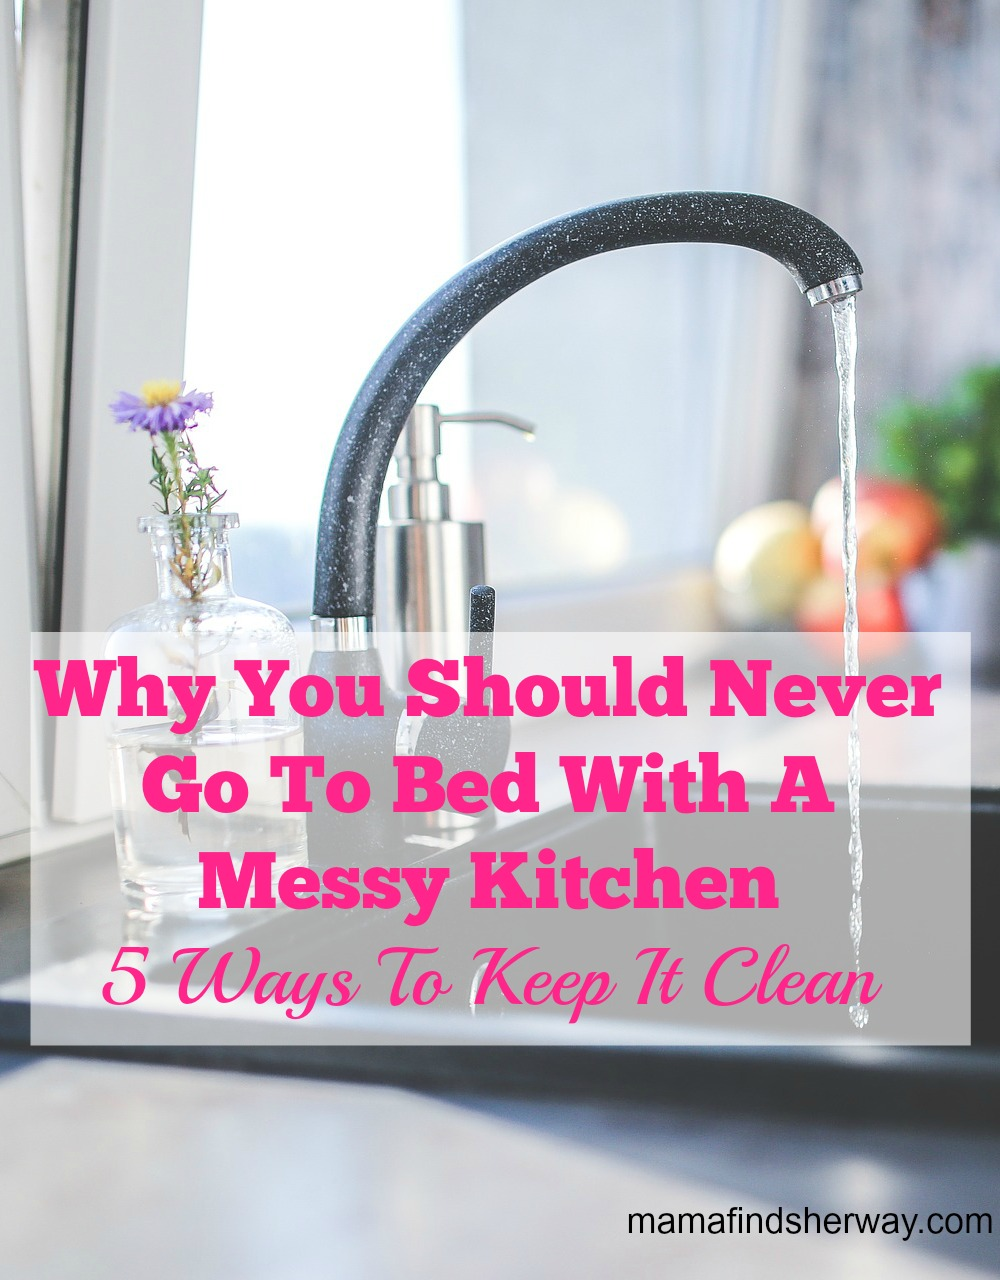 Why You Should Never Go To Bed with a messy kitchen - 5 ways to keep it clean